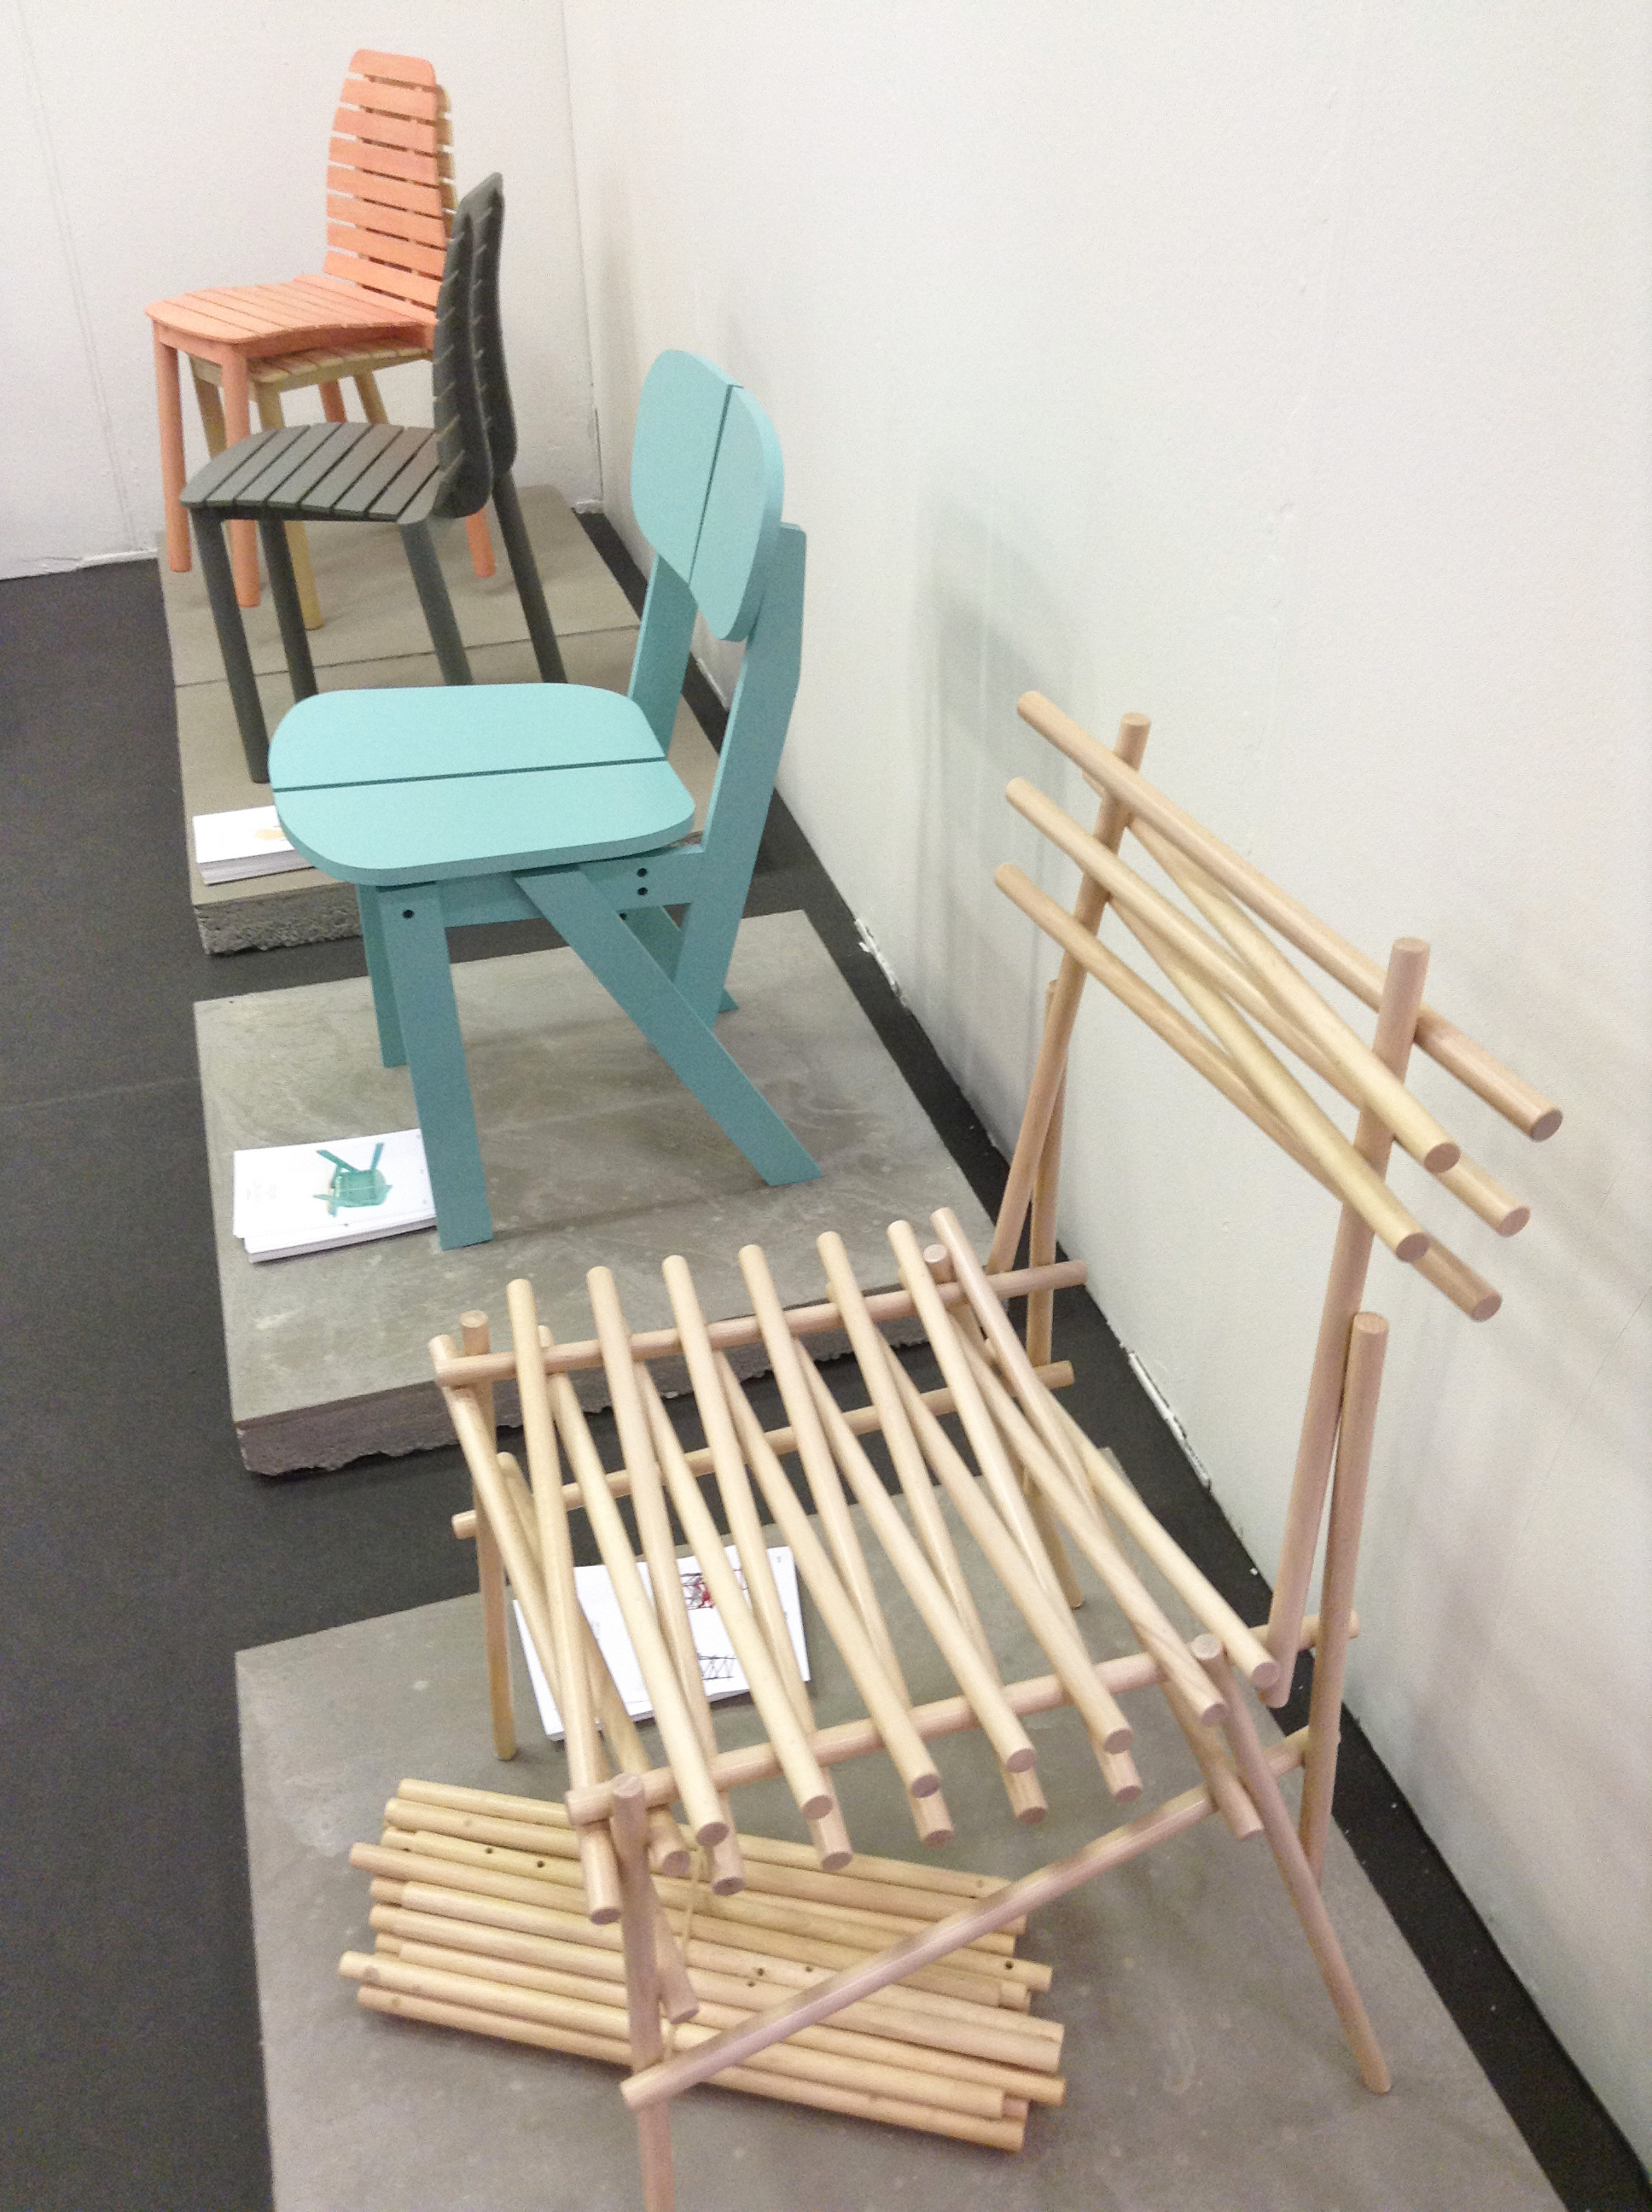 Stockholm Furniture Fair-Chairs